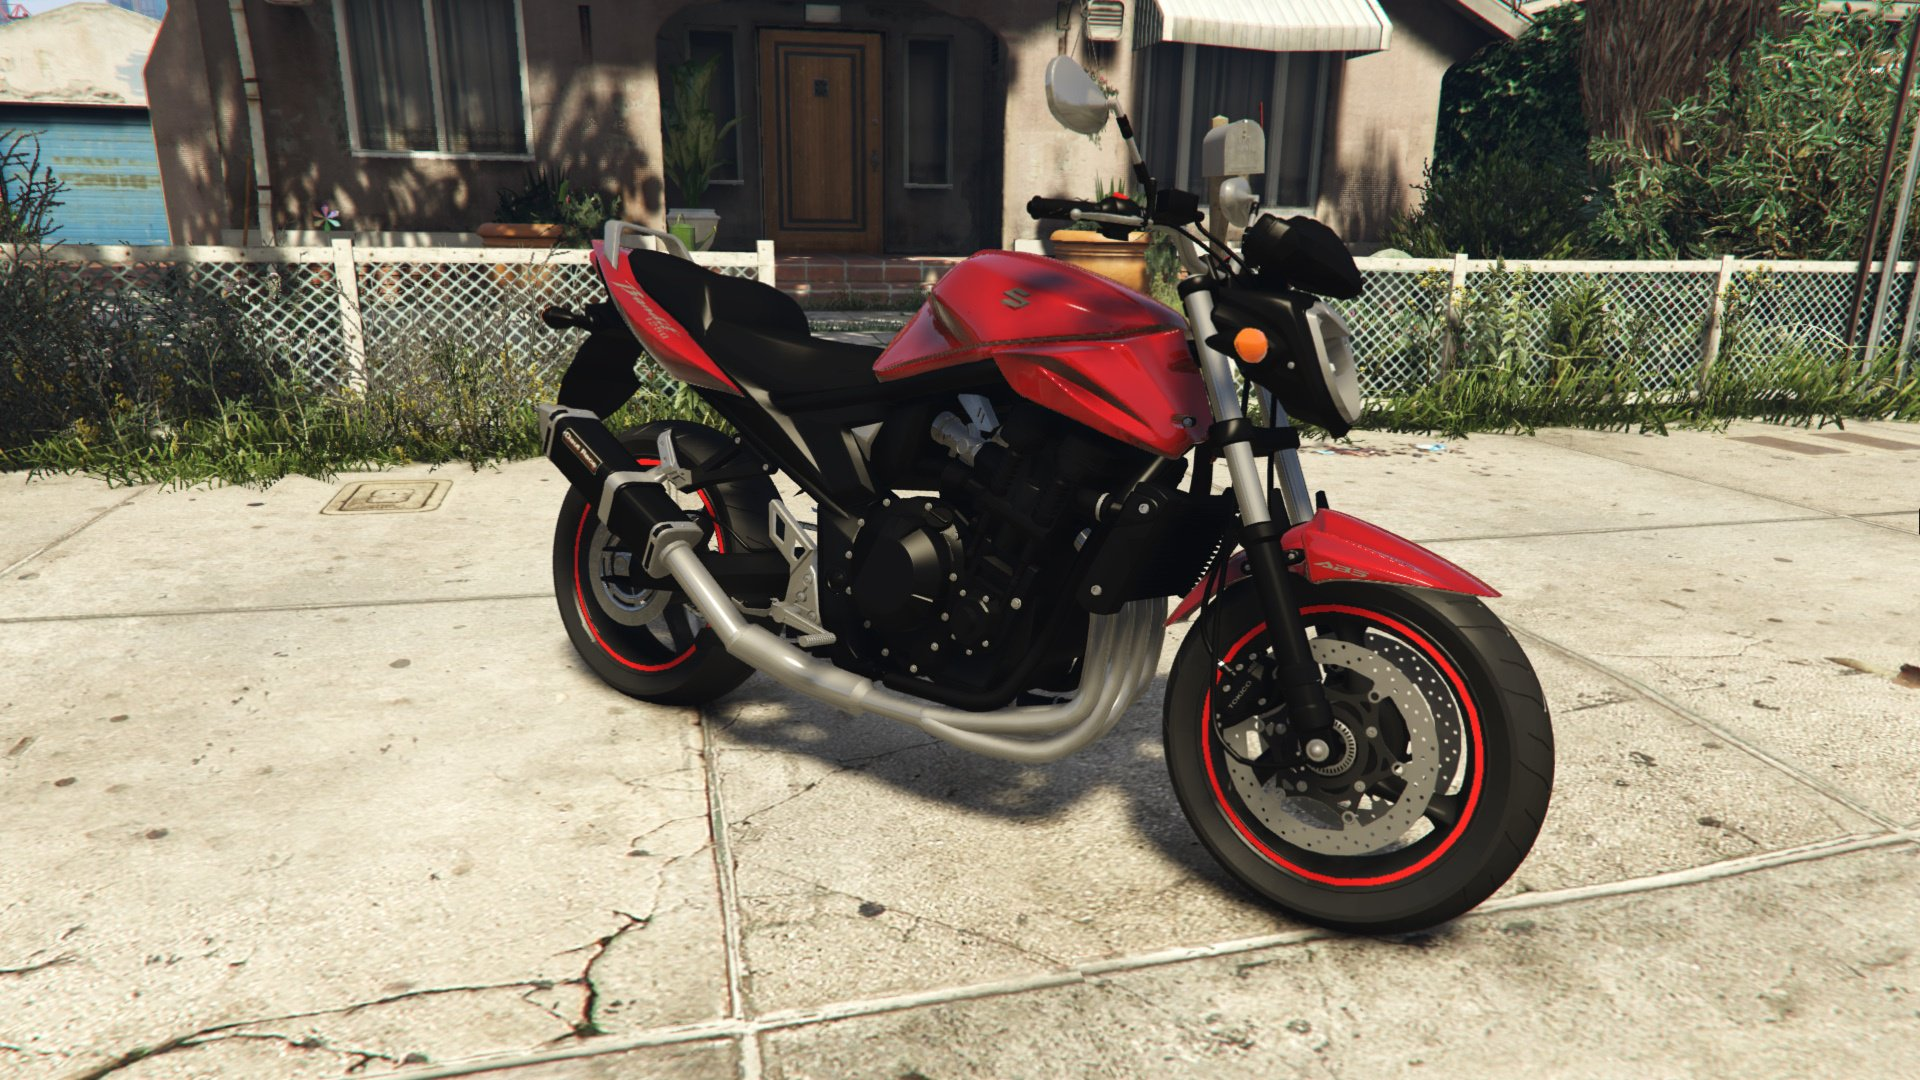 suzuki bandit 1250n vehicules pour gta v sur gta modding. Black Bedroom Furniture Sets. Home Design Ideas